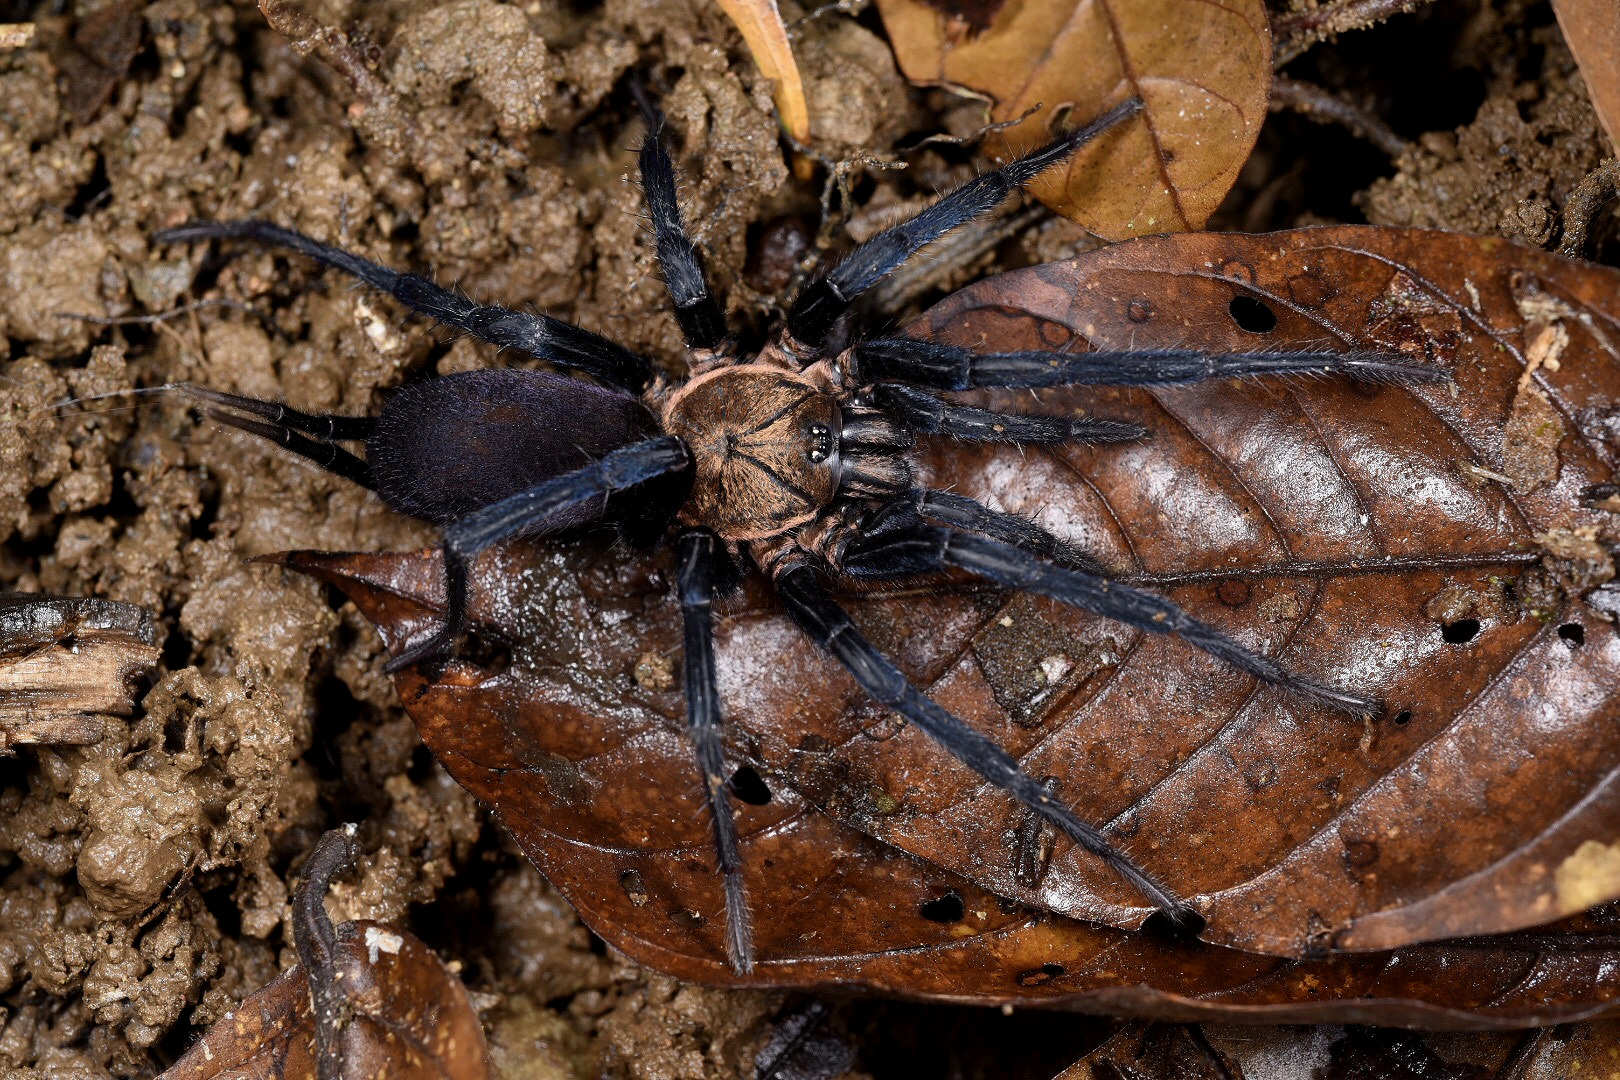 A mature Colombian curtain web spider ( Linothele megatheloides ) on the forest floor in central Panamanian rainforest. Note the greatly elongated spinnerets and silk threads trailing the abdomen. Diplurid spiders reportedly have painful bites with unnerving side effects, but questions remain as to their venom's toxicity to humans. Nonetheless, it seems extremely unwise to free handle them. Image: F. Muller.